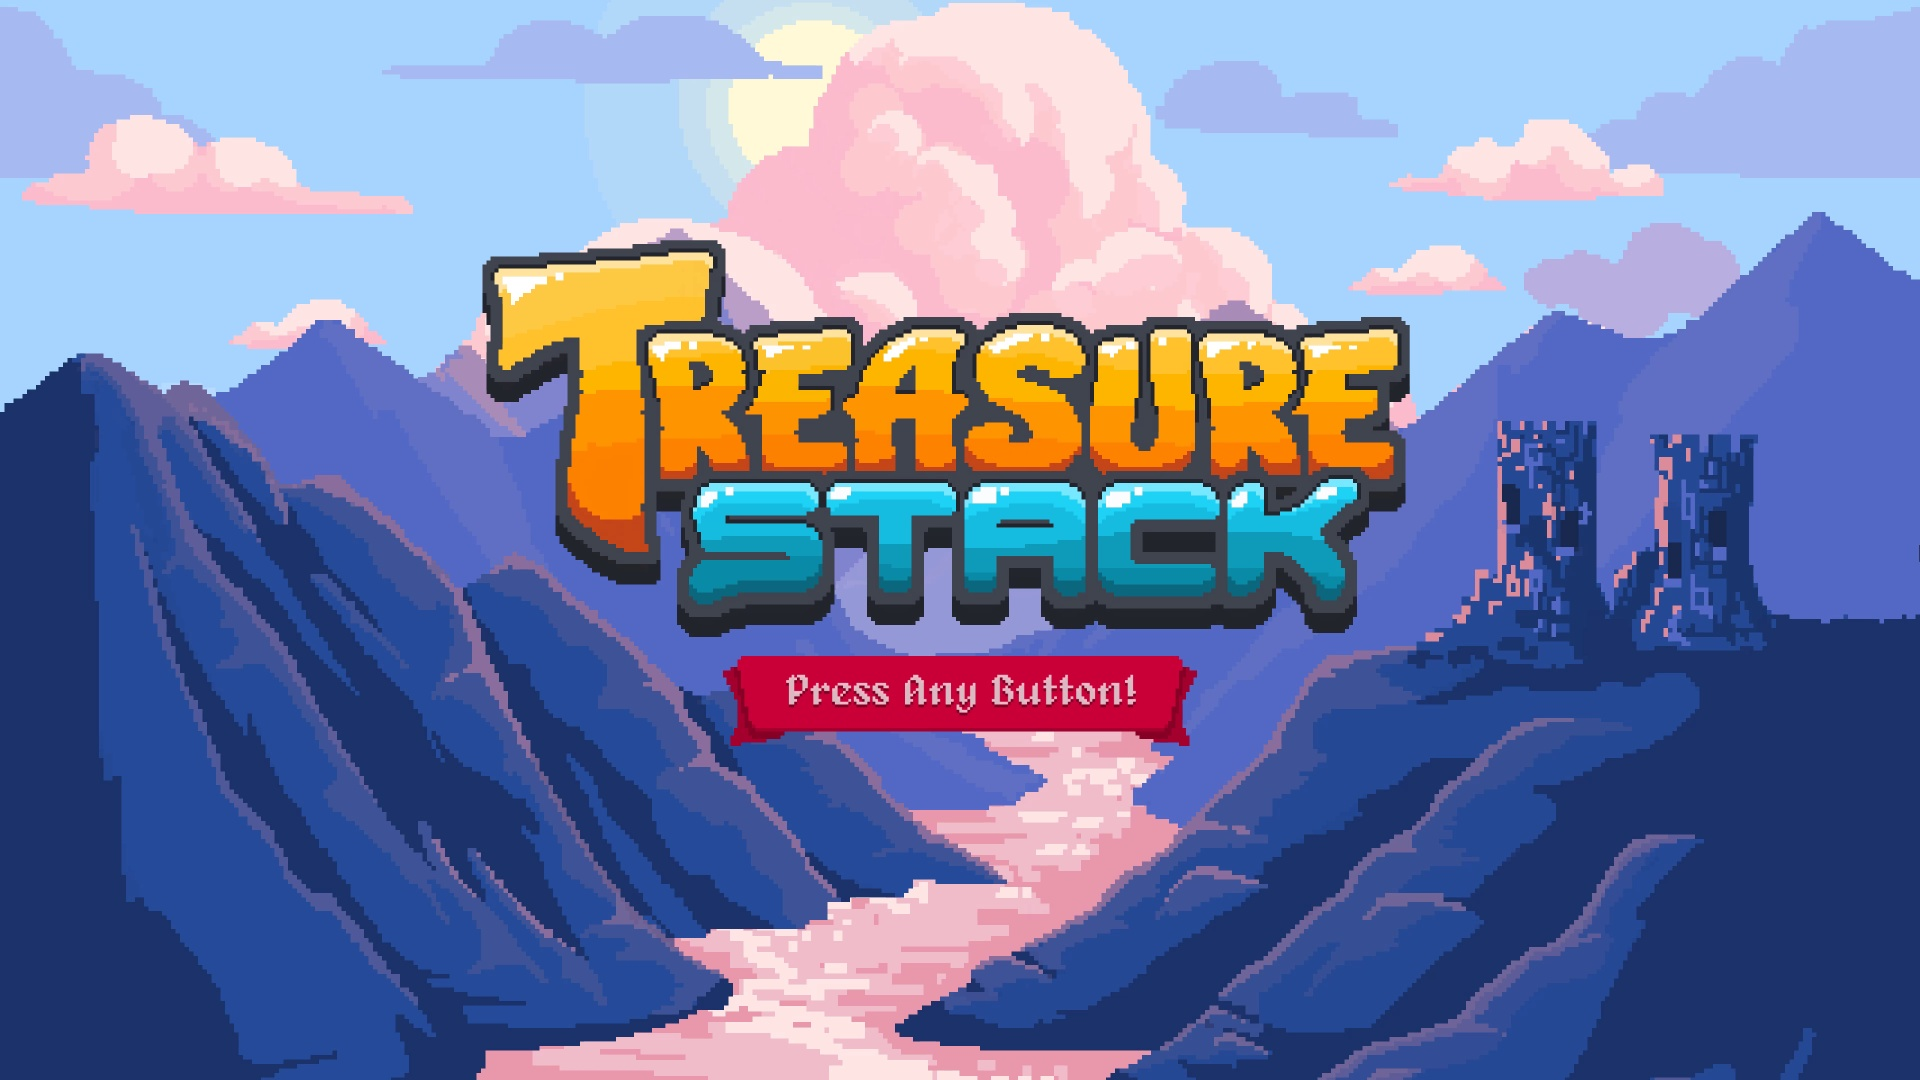 Treasure Stack logo